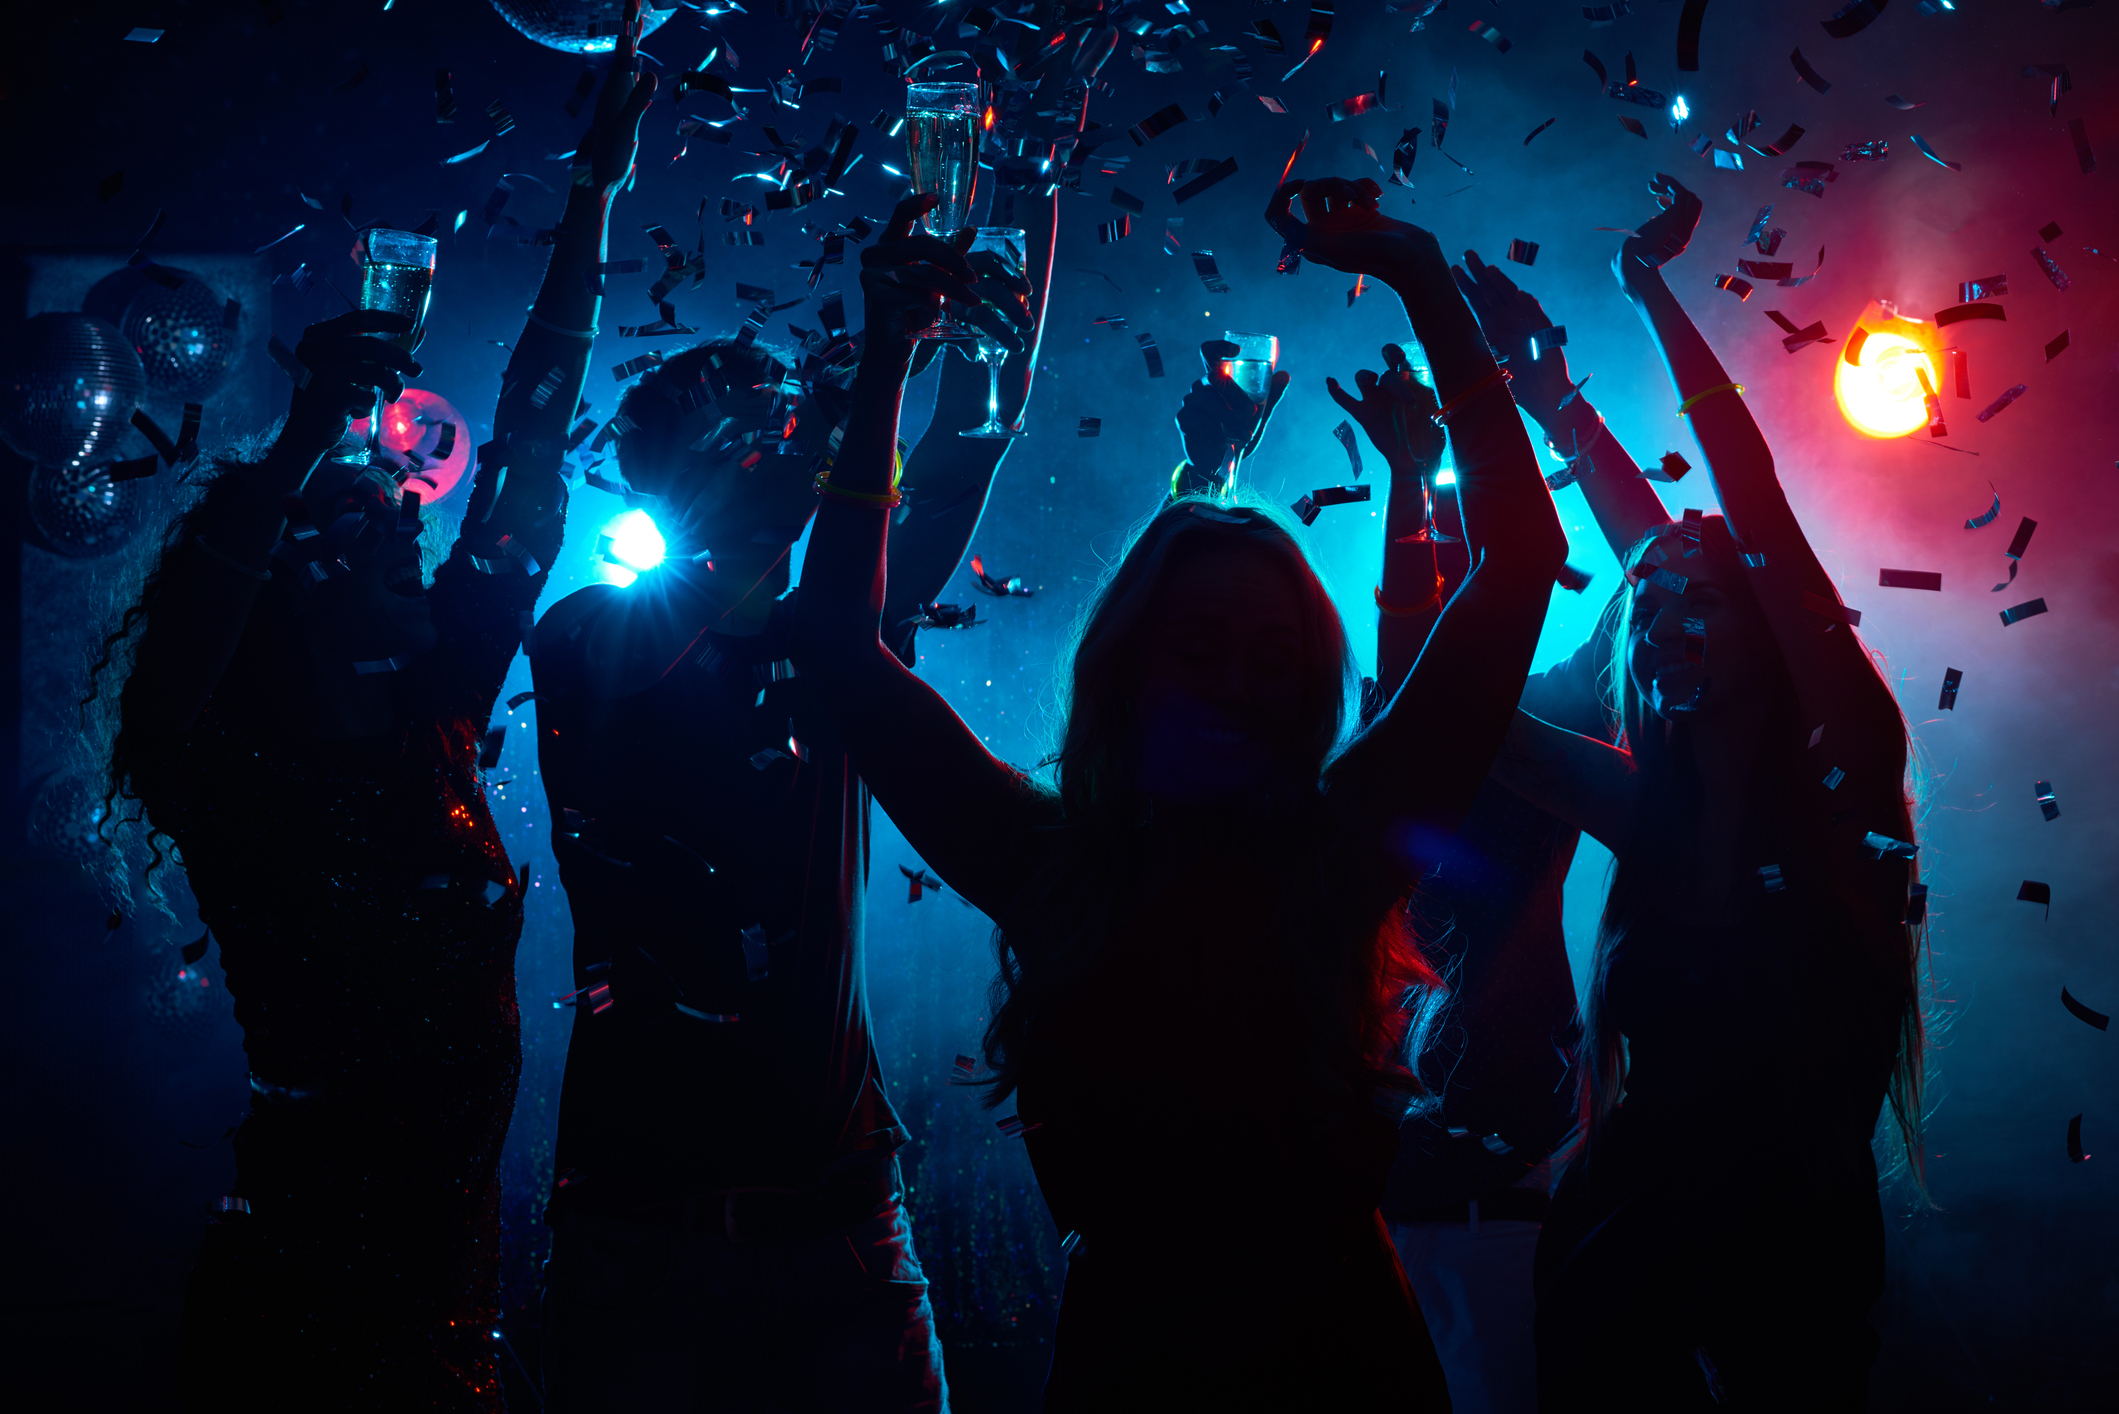 A group of people partying. (Getty Images)